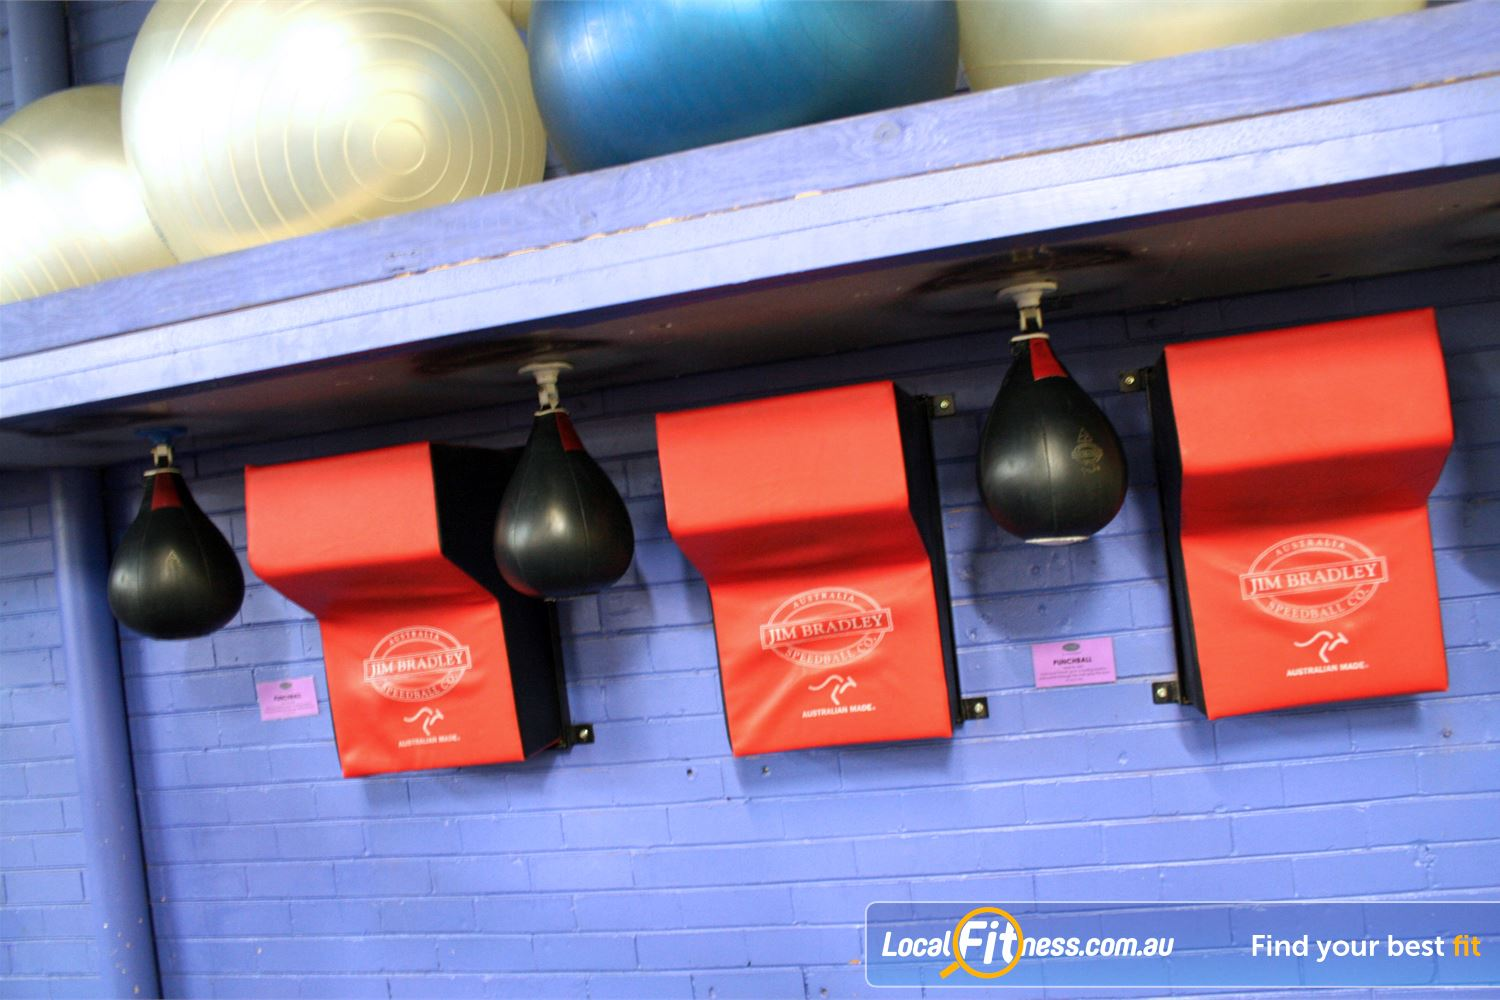 FITafex Gymnasium Near Niddrie Full range of speed balls and uppercut bags.